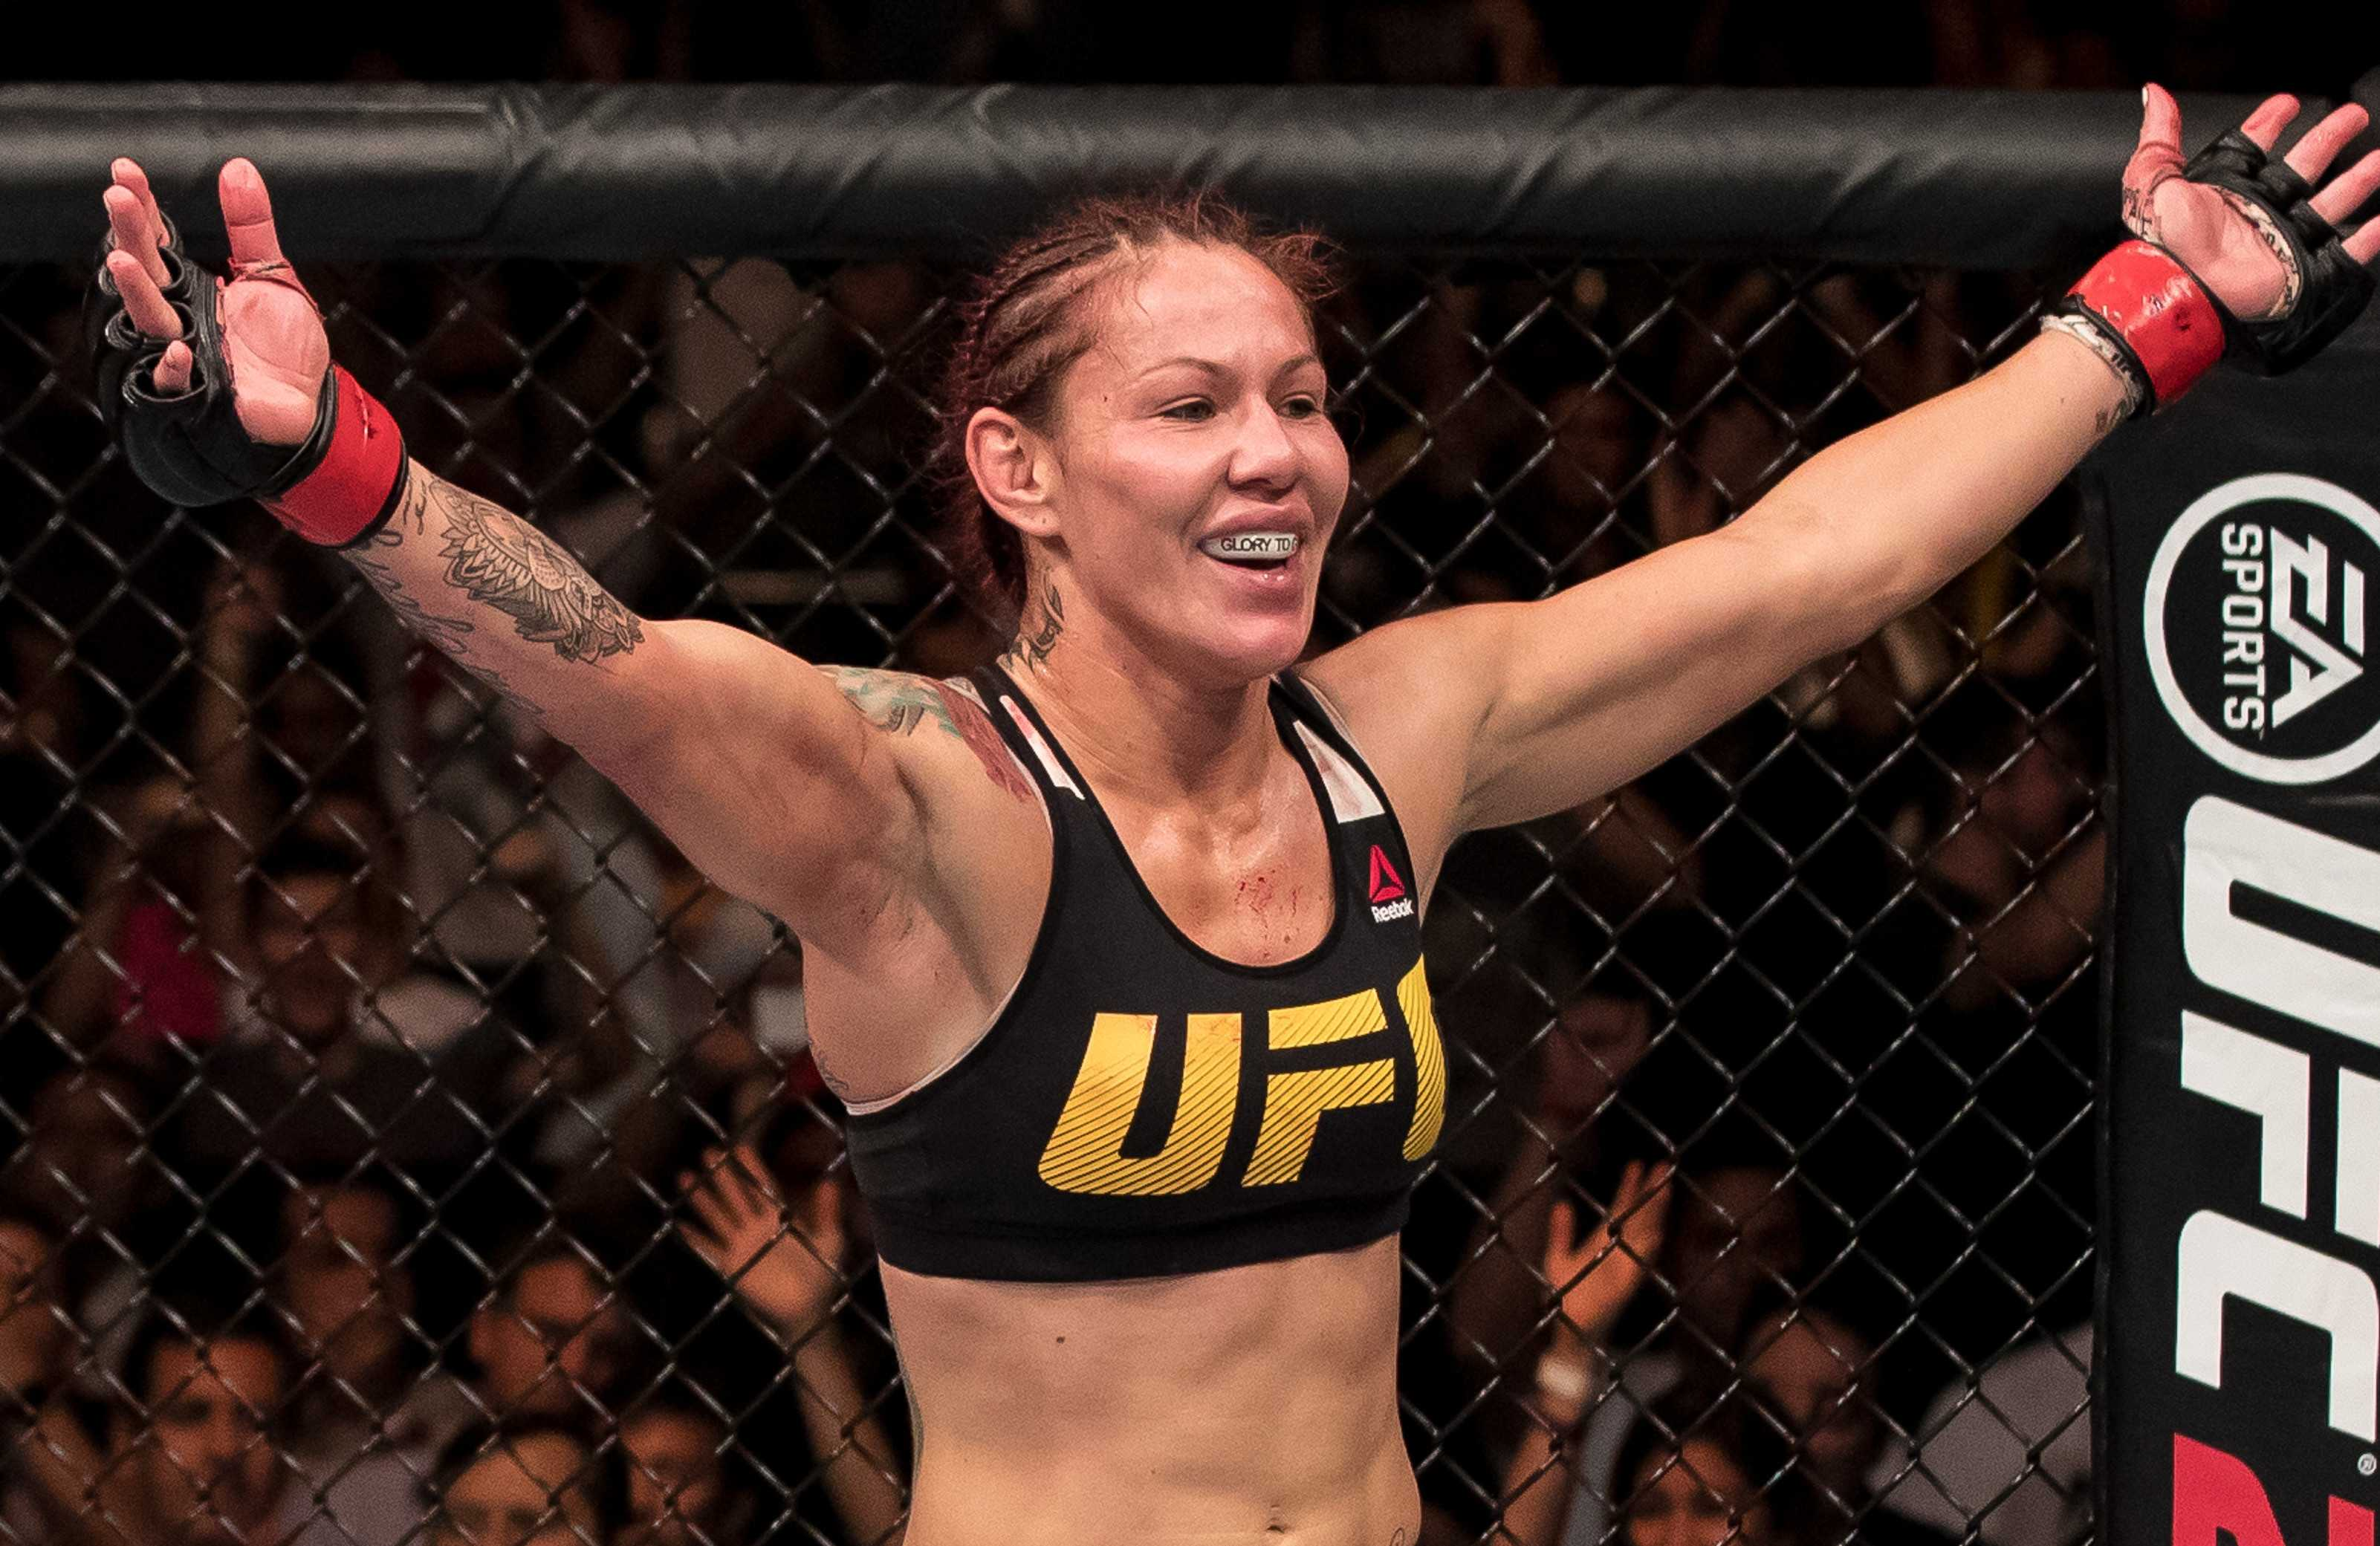 Cris Cyborg Early Life